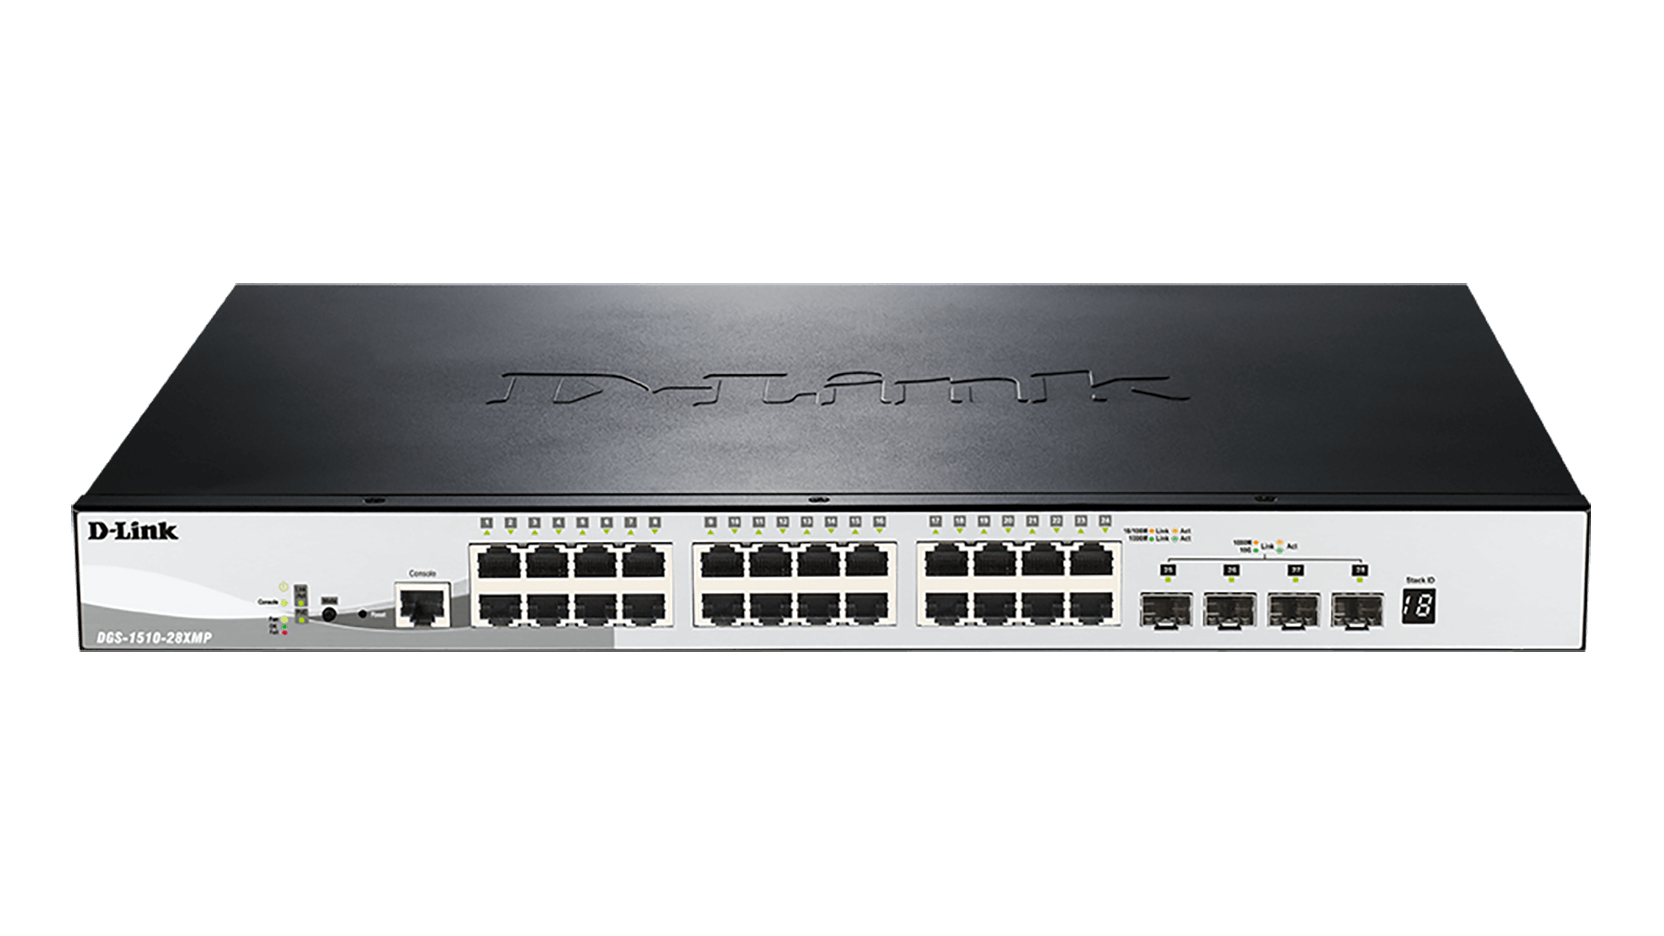 D-Link DGS-1510-28XMP 28-Port Gigabit Stackable POE Smart Managed Switch including 4 10G SFP+